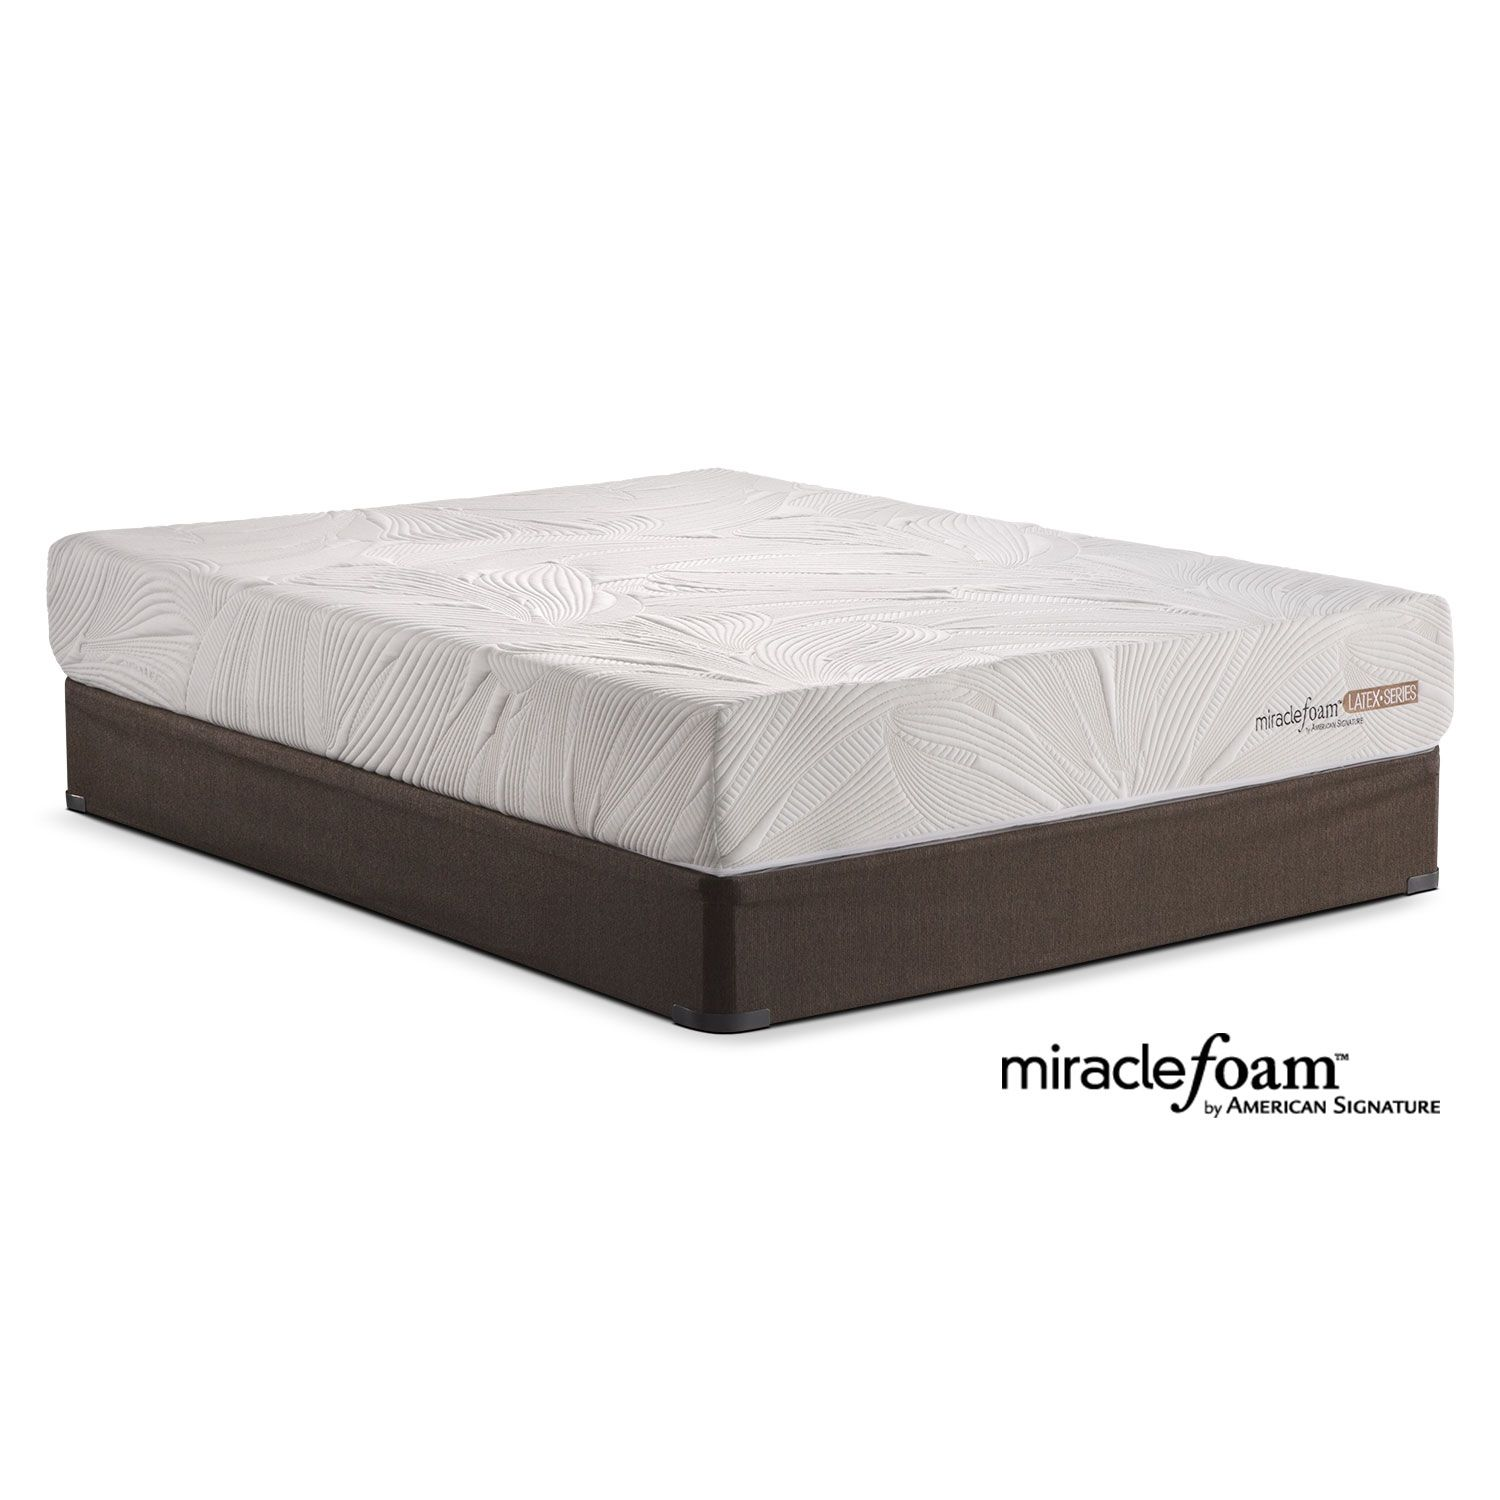 mattresses and bedding tranquil full mattress foundation set